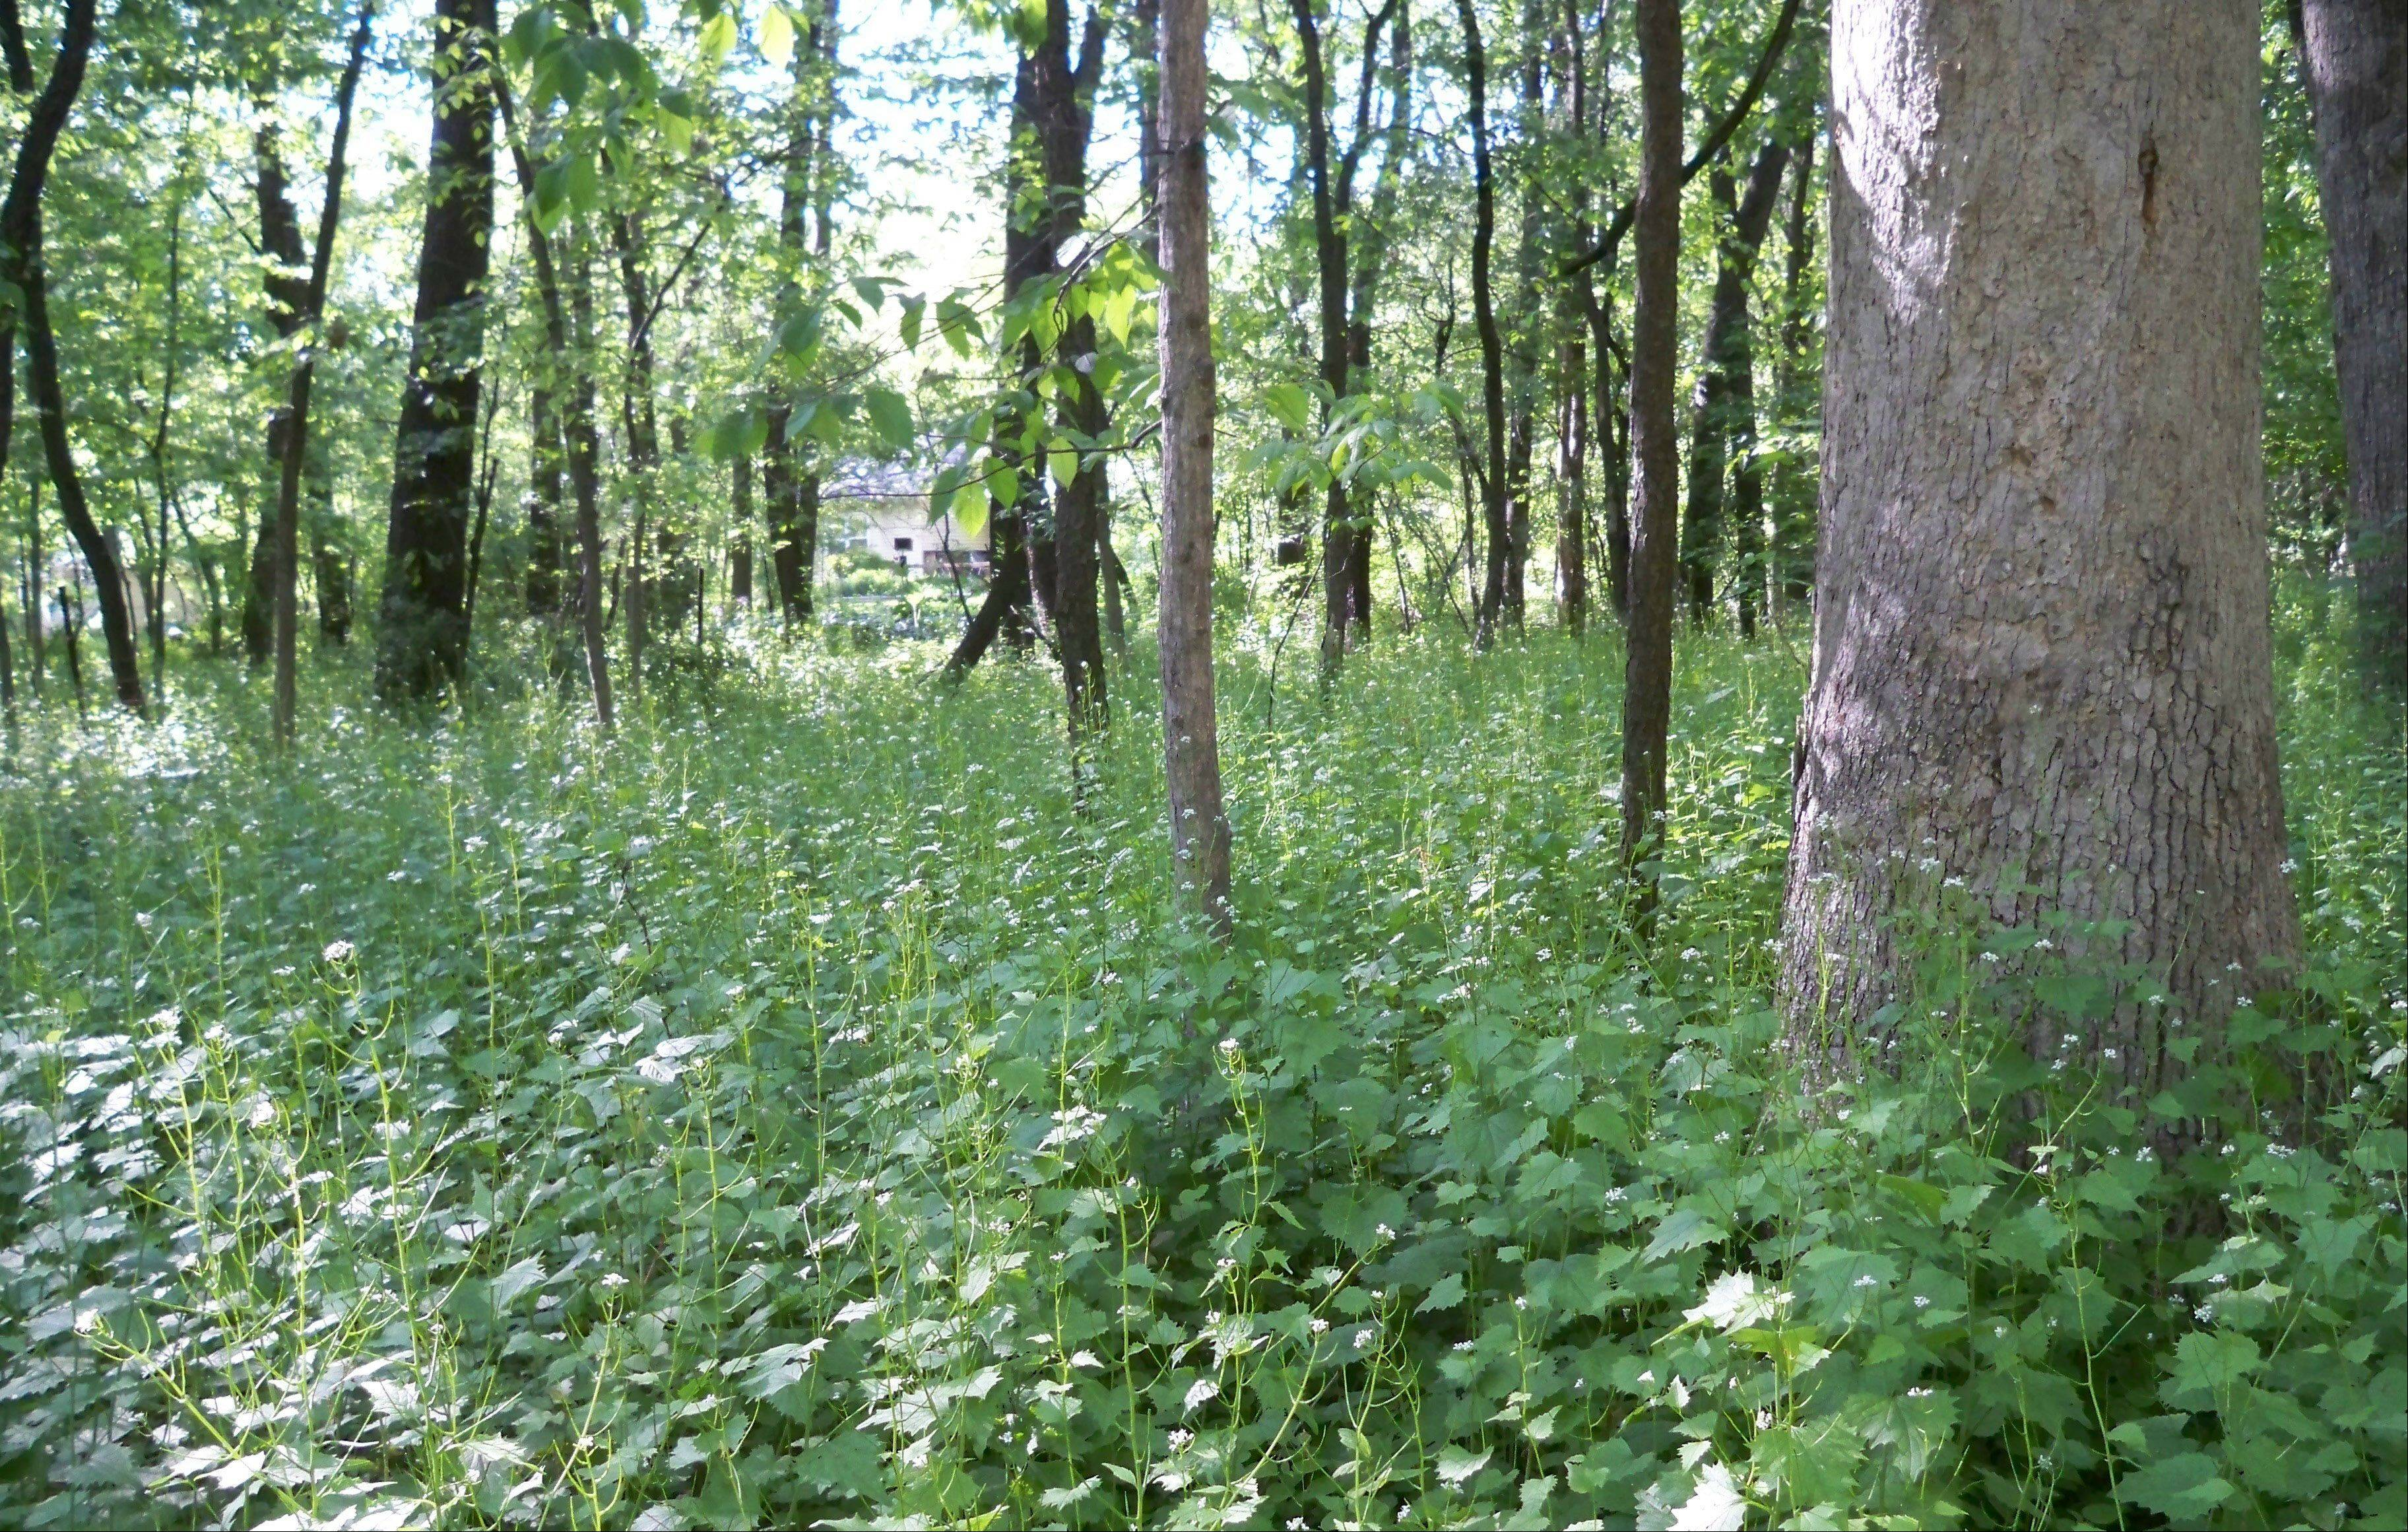 Garlic mustard takes over entire woodlands to the exclusion of native wildflowers that once thrived here. It is very difficult to get rid of.